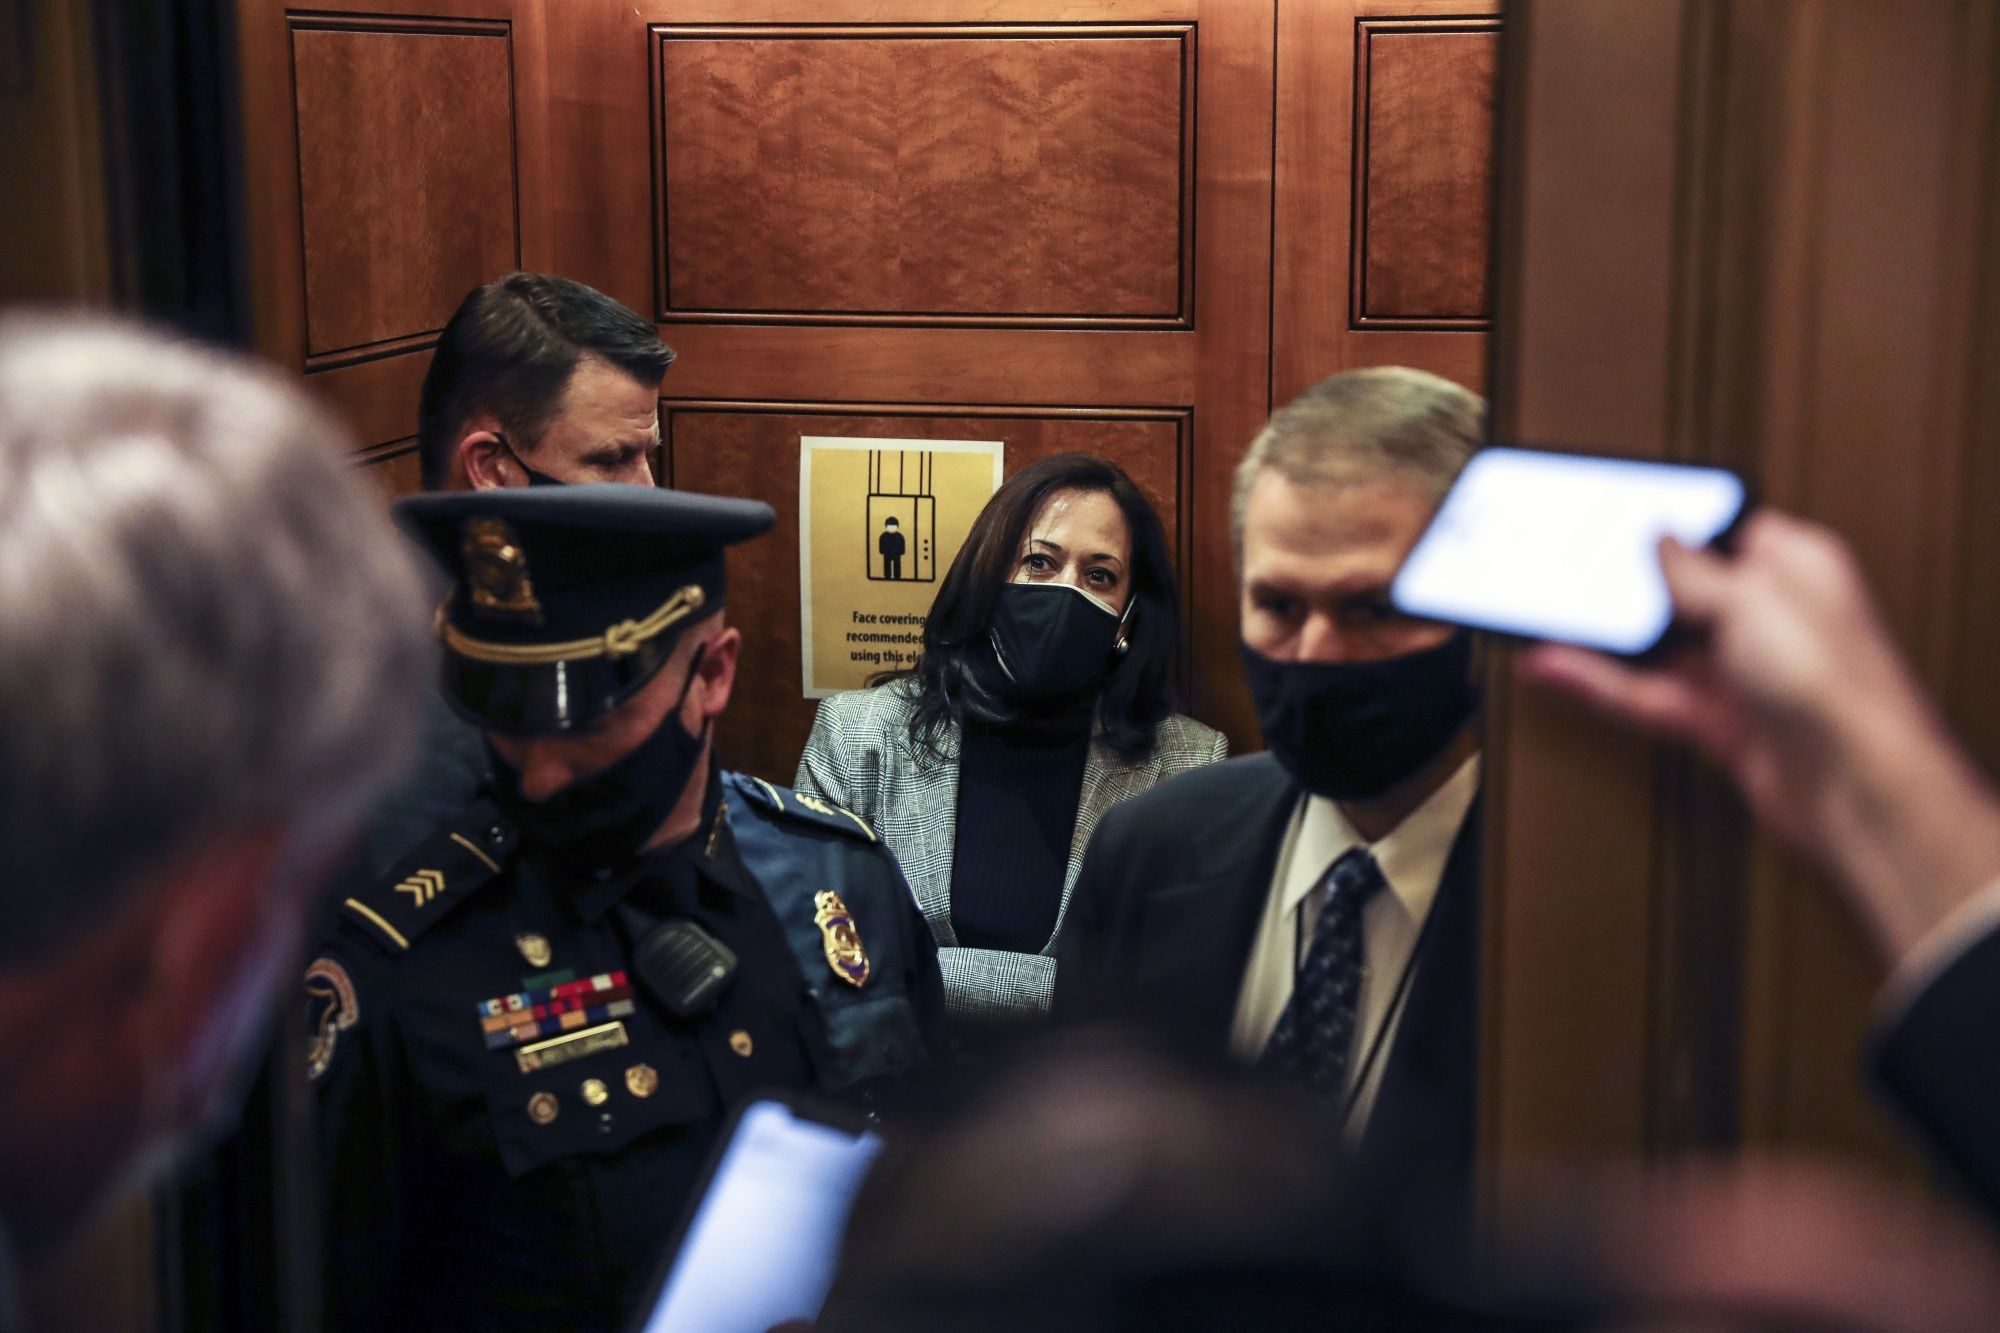 U.S. Vice President-elect Kamala Harris, wears a protective mask departs the Senate floor following a vote at the U.S. Capitol in Washington, D.C., U.S., on Monday, Dec. 21, 2020. The Senate passed a giant year-end spending bill combining $900 billion in Covid-19 relief aid with $1.4 trillion in regular government funding and a bevy of tax breaks for businesses.